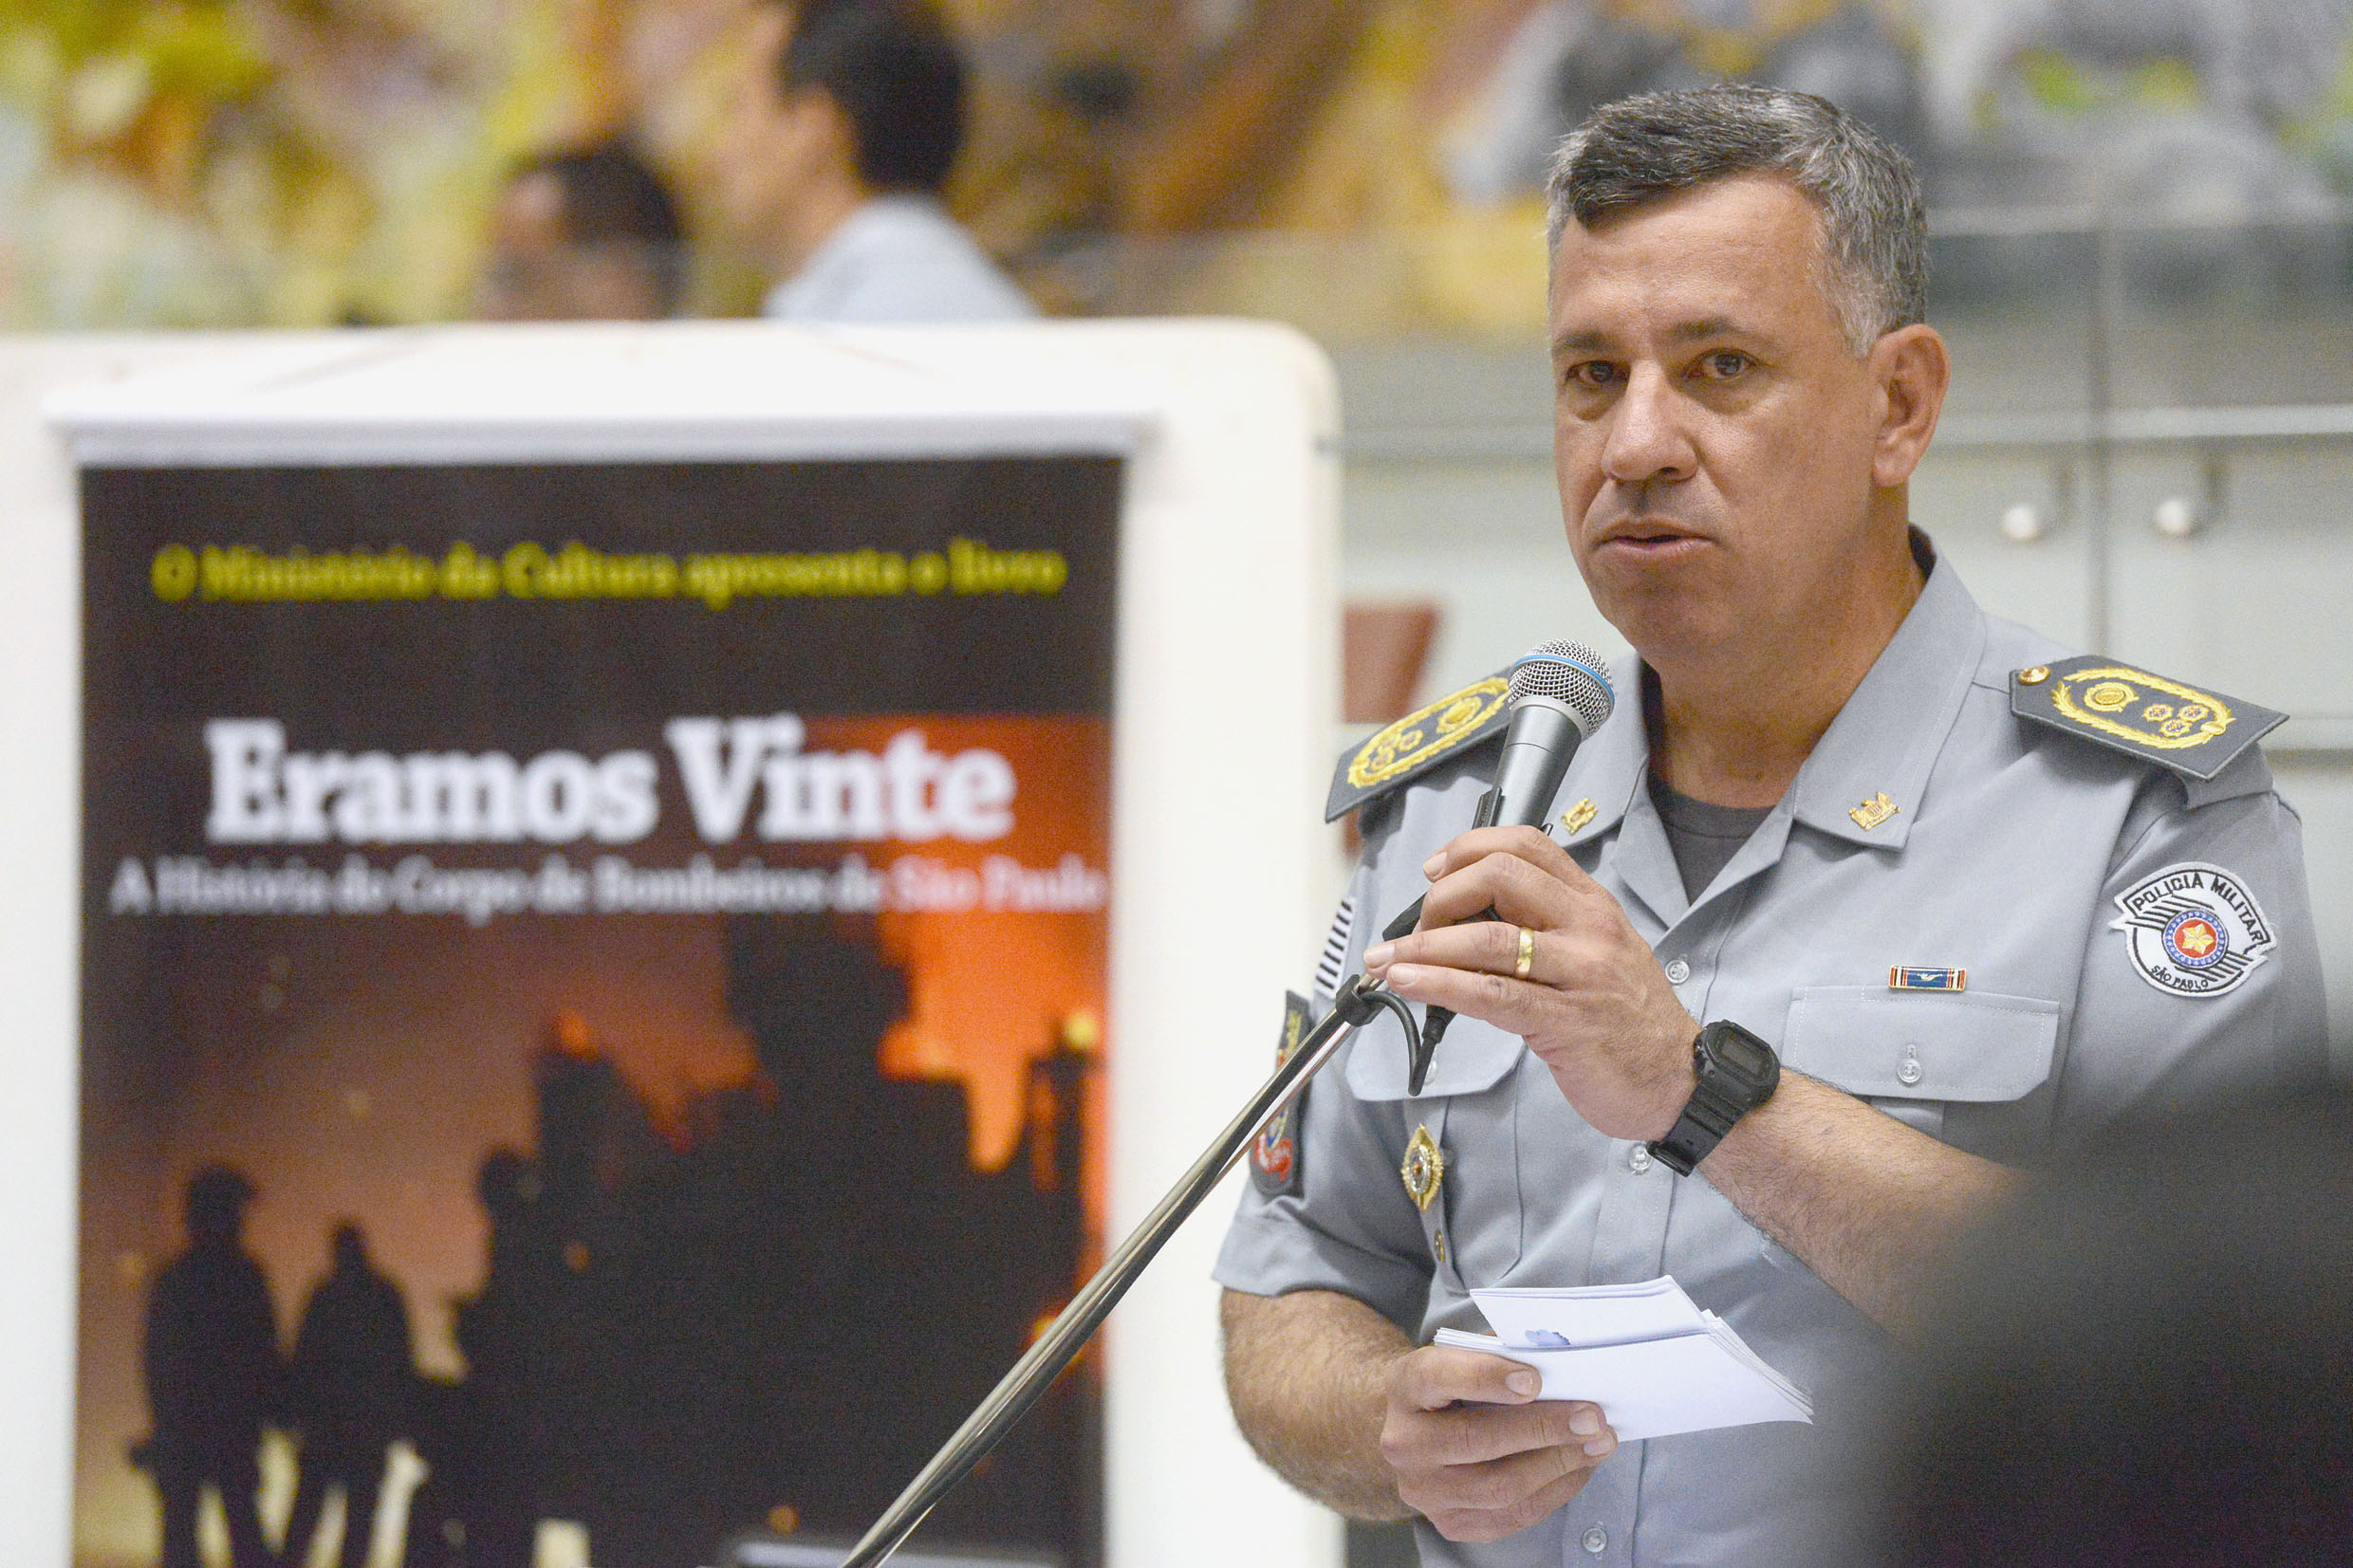 Coronel Salles<a style='float:right' href='https://www3.al.sp.gov.br/repositorio/noticia/N-12-2018/fg228207.jpg' target=_blank><img src='/_img/material-file-download-white.png' width='14px' alt='Clique para baixar a imagem'></a>